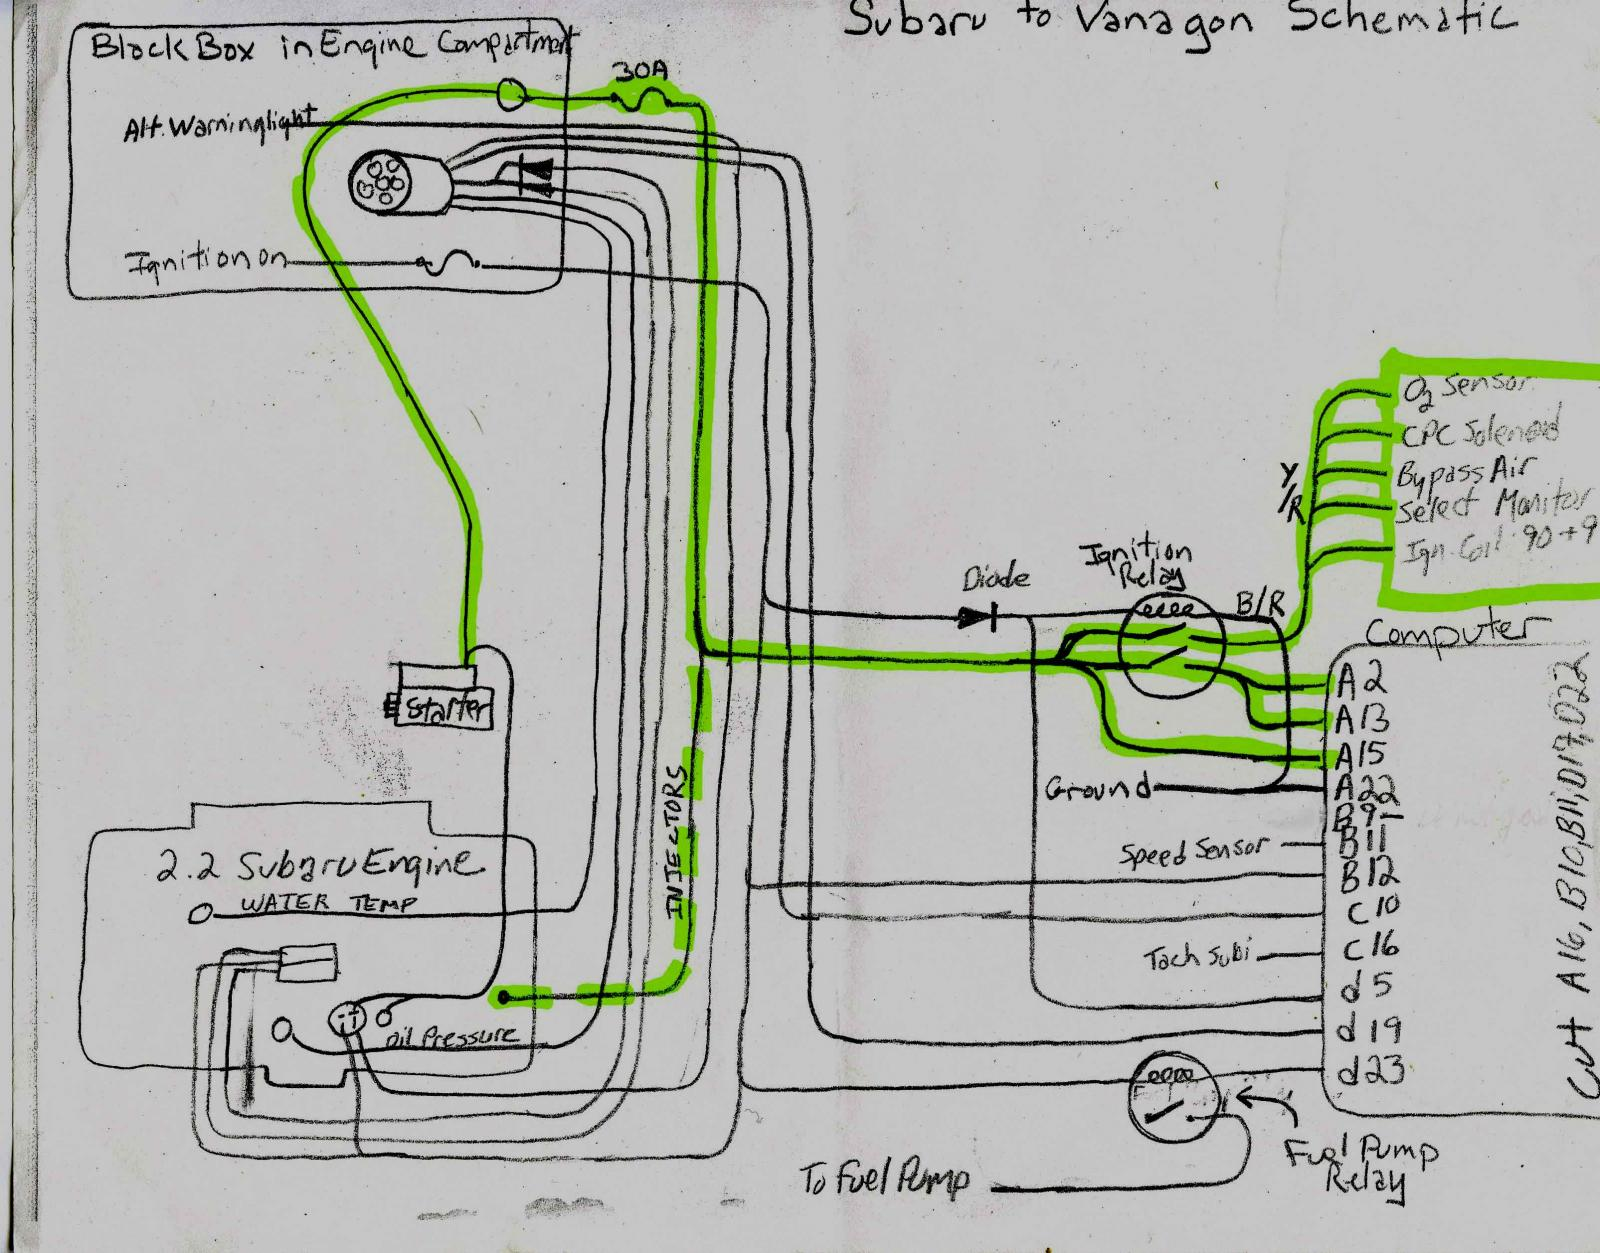 Subaru Ej25 Wiring Harness : Ej vanagon wiring harness diagram images